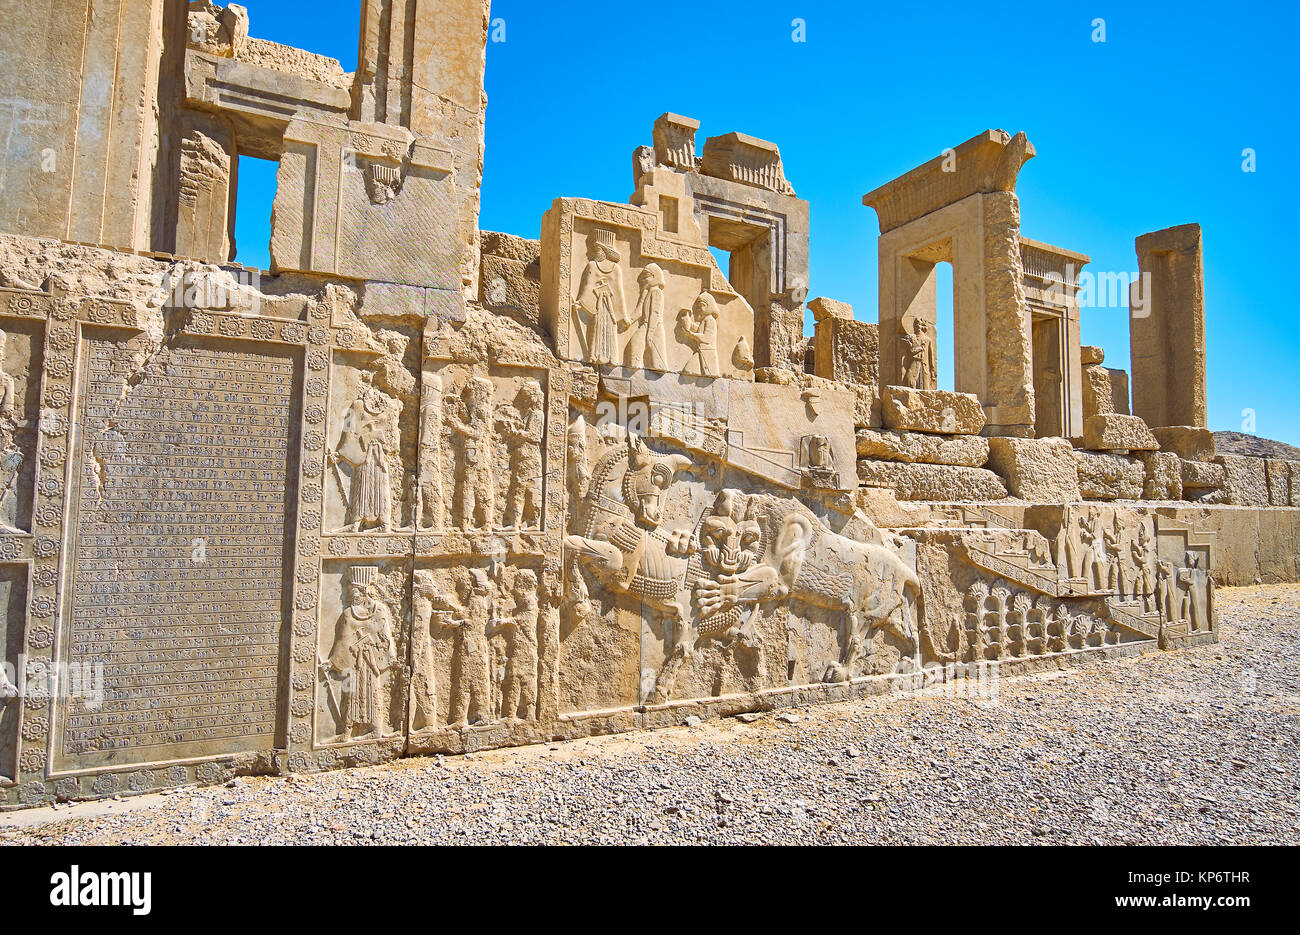 The facade of ruined Tachara palace with ancient Persian text and carvings of soldiers, courtiers, lion biting the - Stock Image